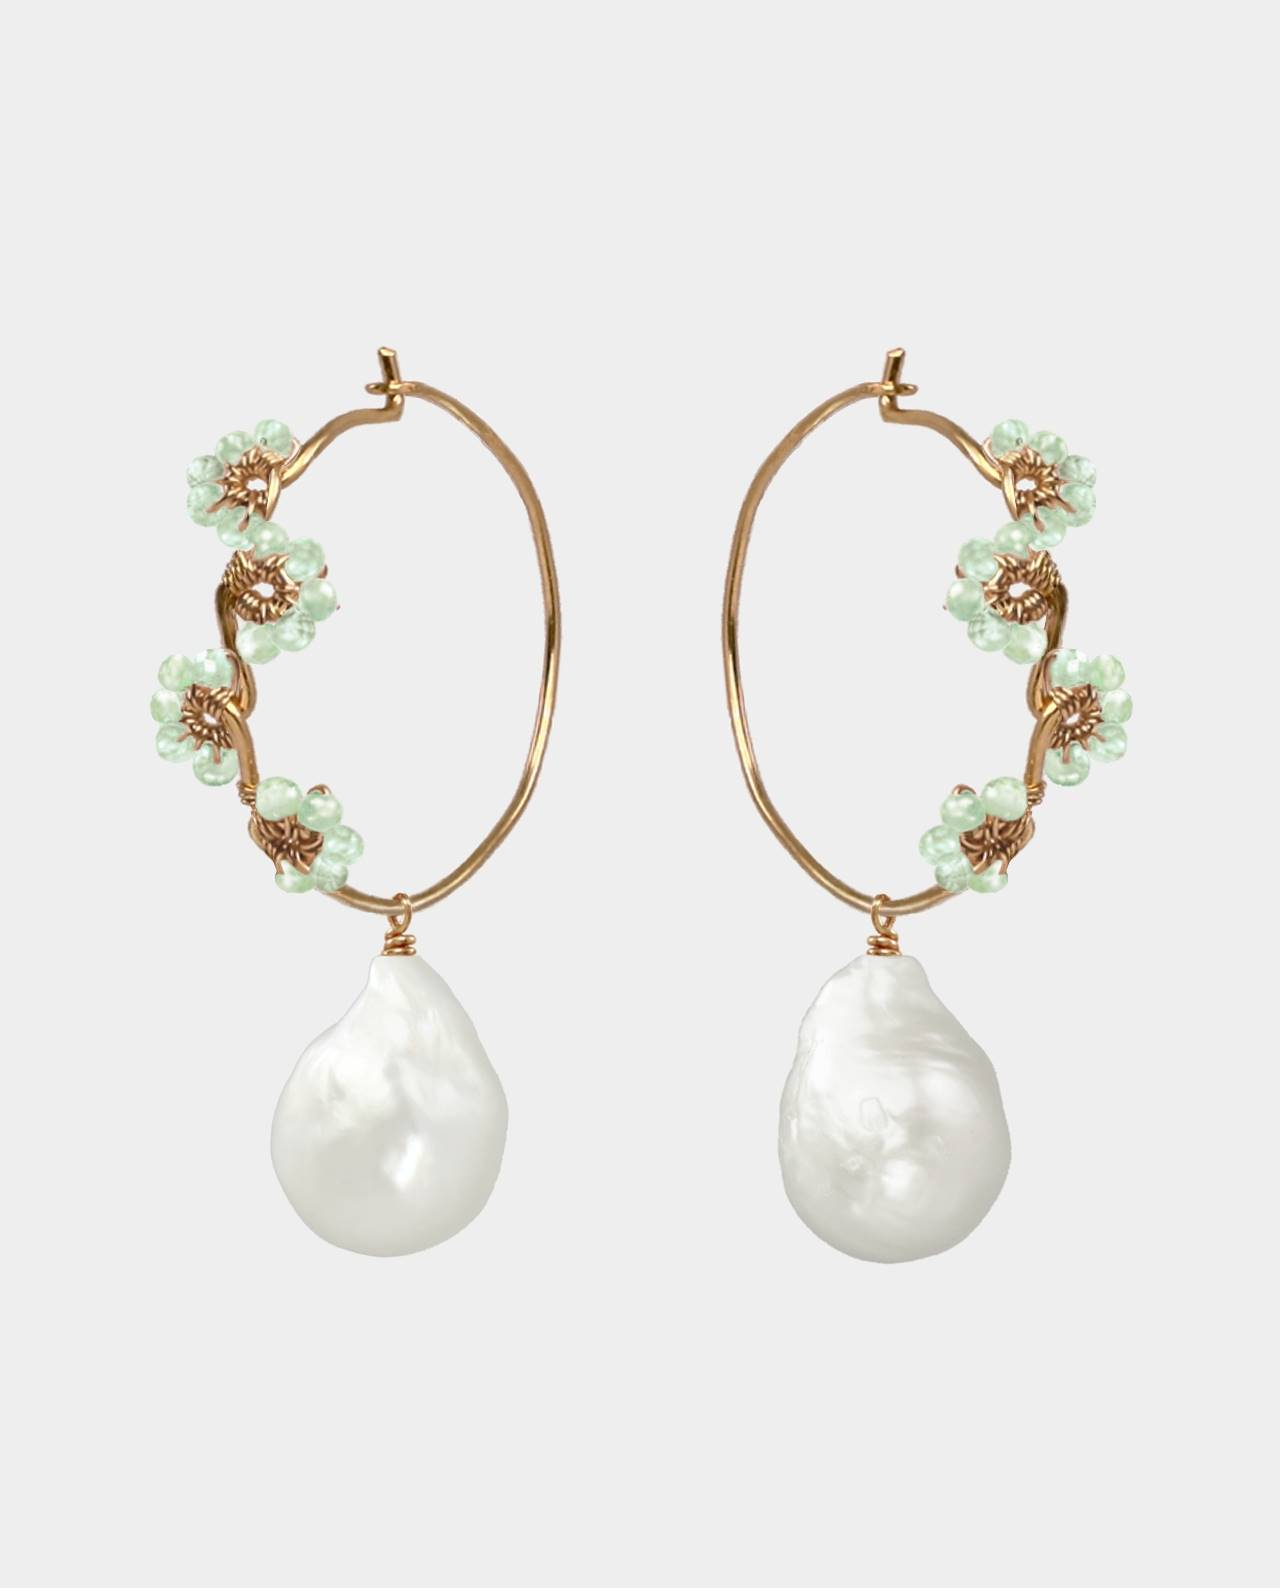 Handmade creoles with fine gemstones and original freshwater pearls as a popular gift idea